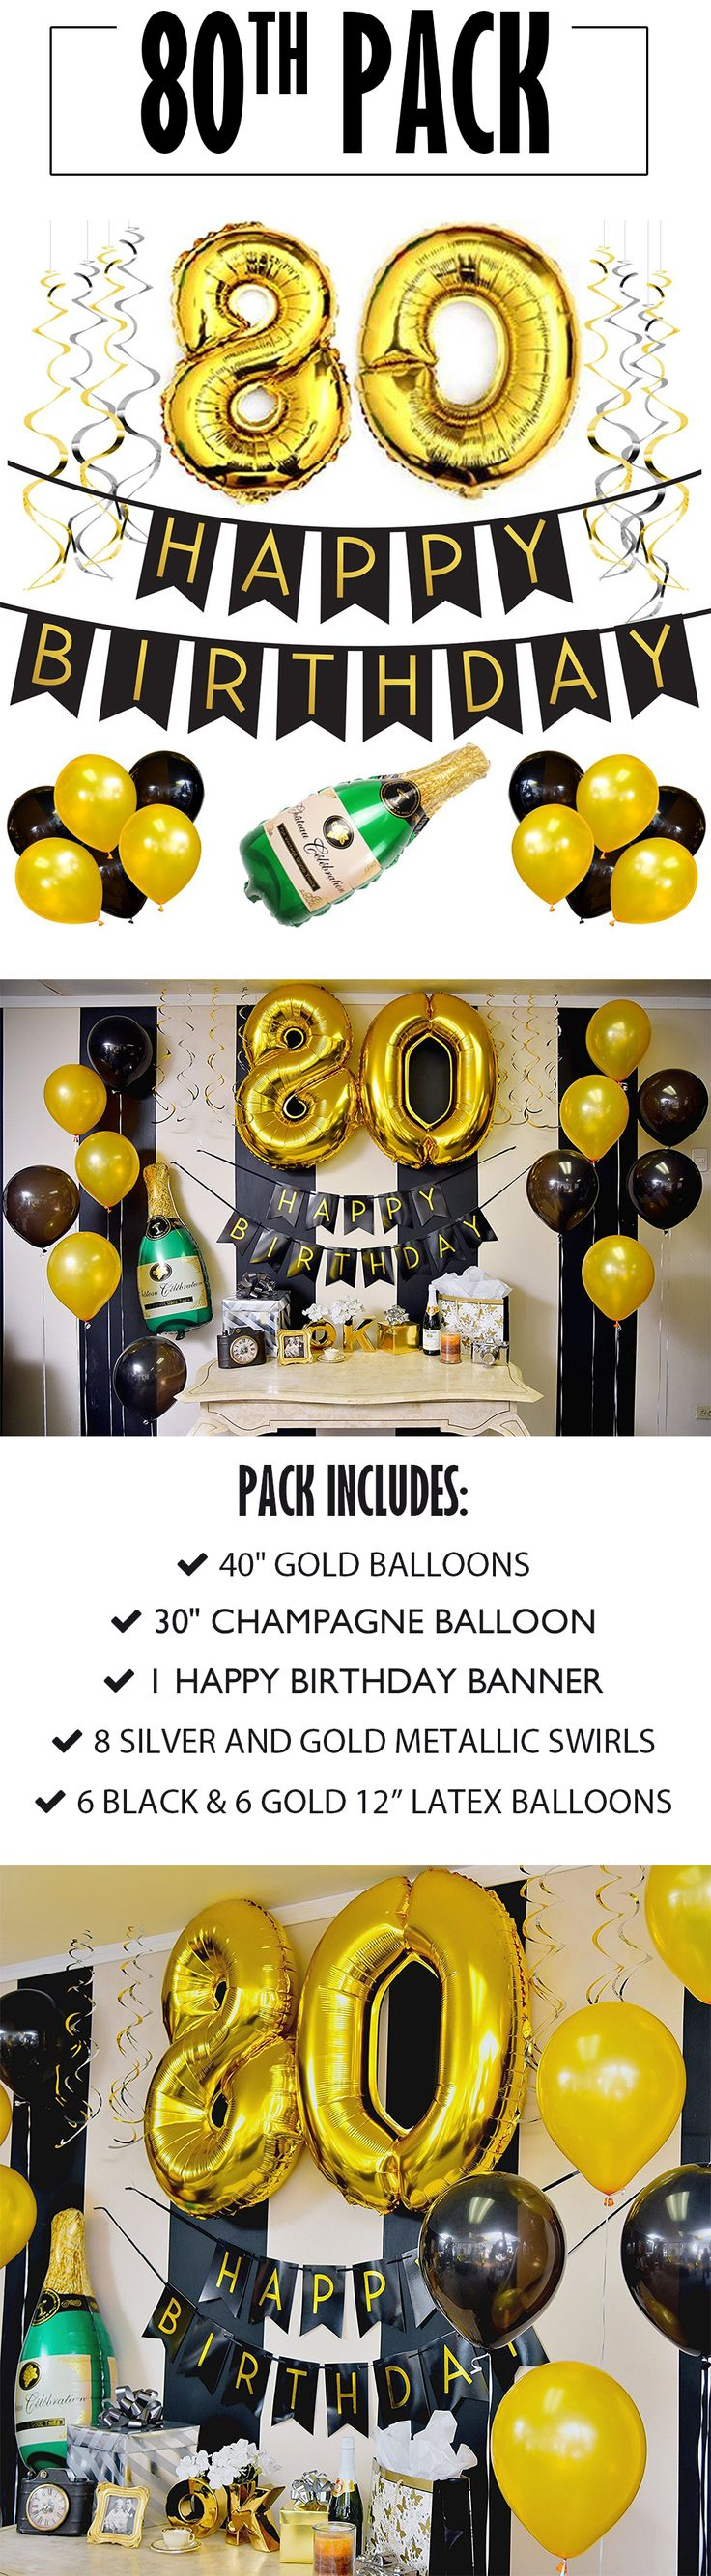 23 best birthday banners images on pinterest  birthday banners